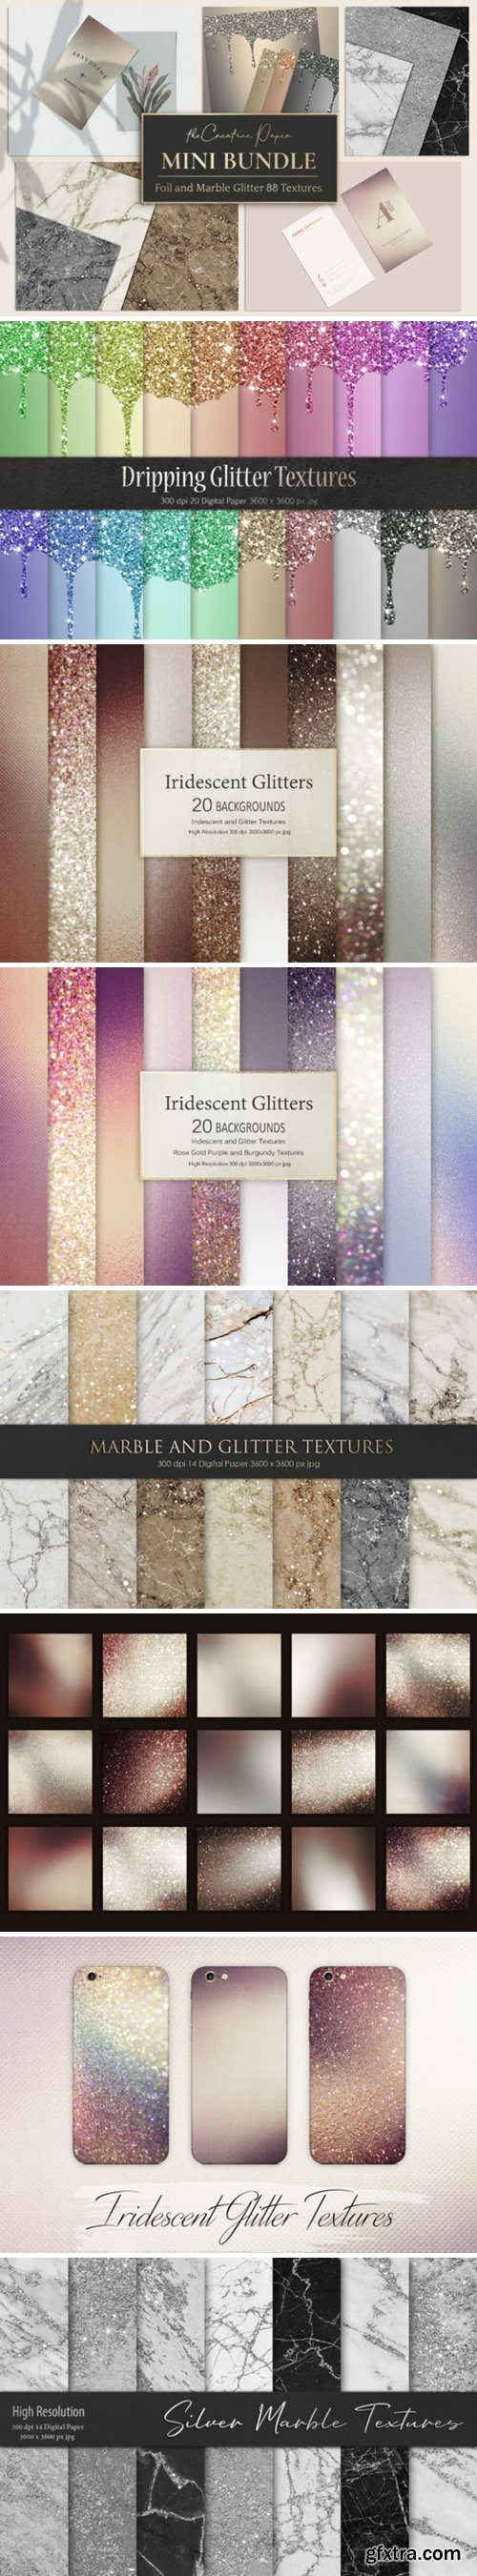 Rose Gold Foil & Marble Glitter Textures 2138222